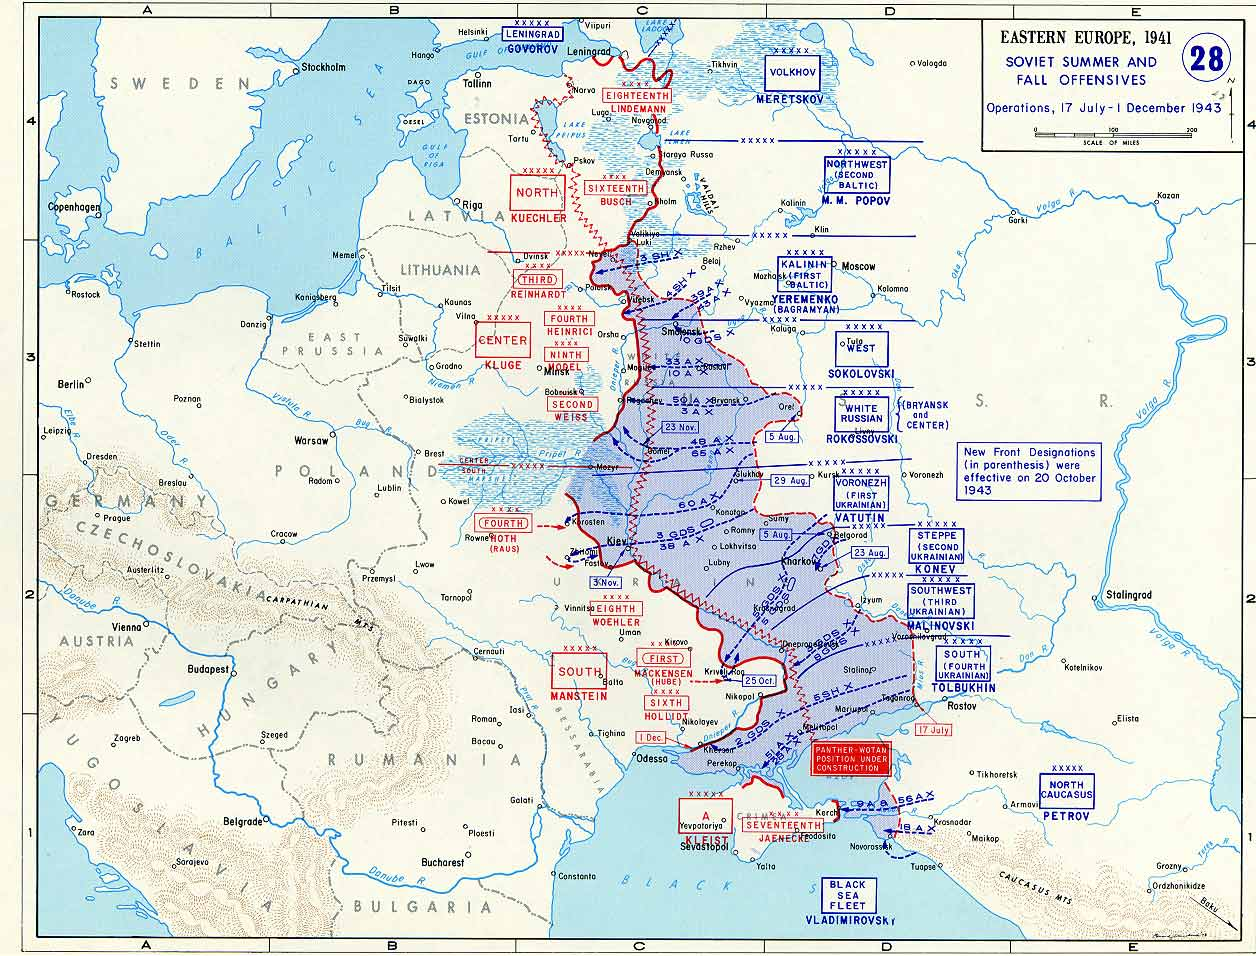 German Forces Post-Kursk | Weapons and Warfare on lyubertsy russia map, markovo russia map, tallinn russia map, tula russia map, tikhvin russia map, war russia map, elista russia map, zagorsk russia map, sevastopol russia map, severomorsk russia map, stalingrad russia map, krasnogorsk russia map, ivanovo russia map, nyagan russia map, kirovsk russia map, yurga russia map, kalmykia russia map, donetsk russia map, birobidzhan russia map, ukhta russia map,